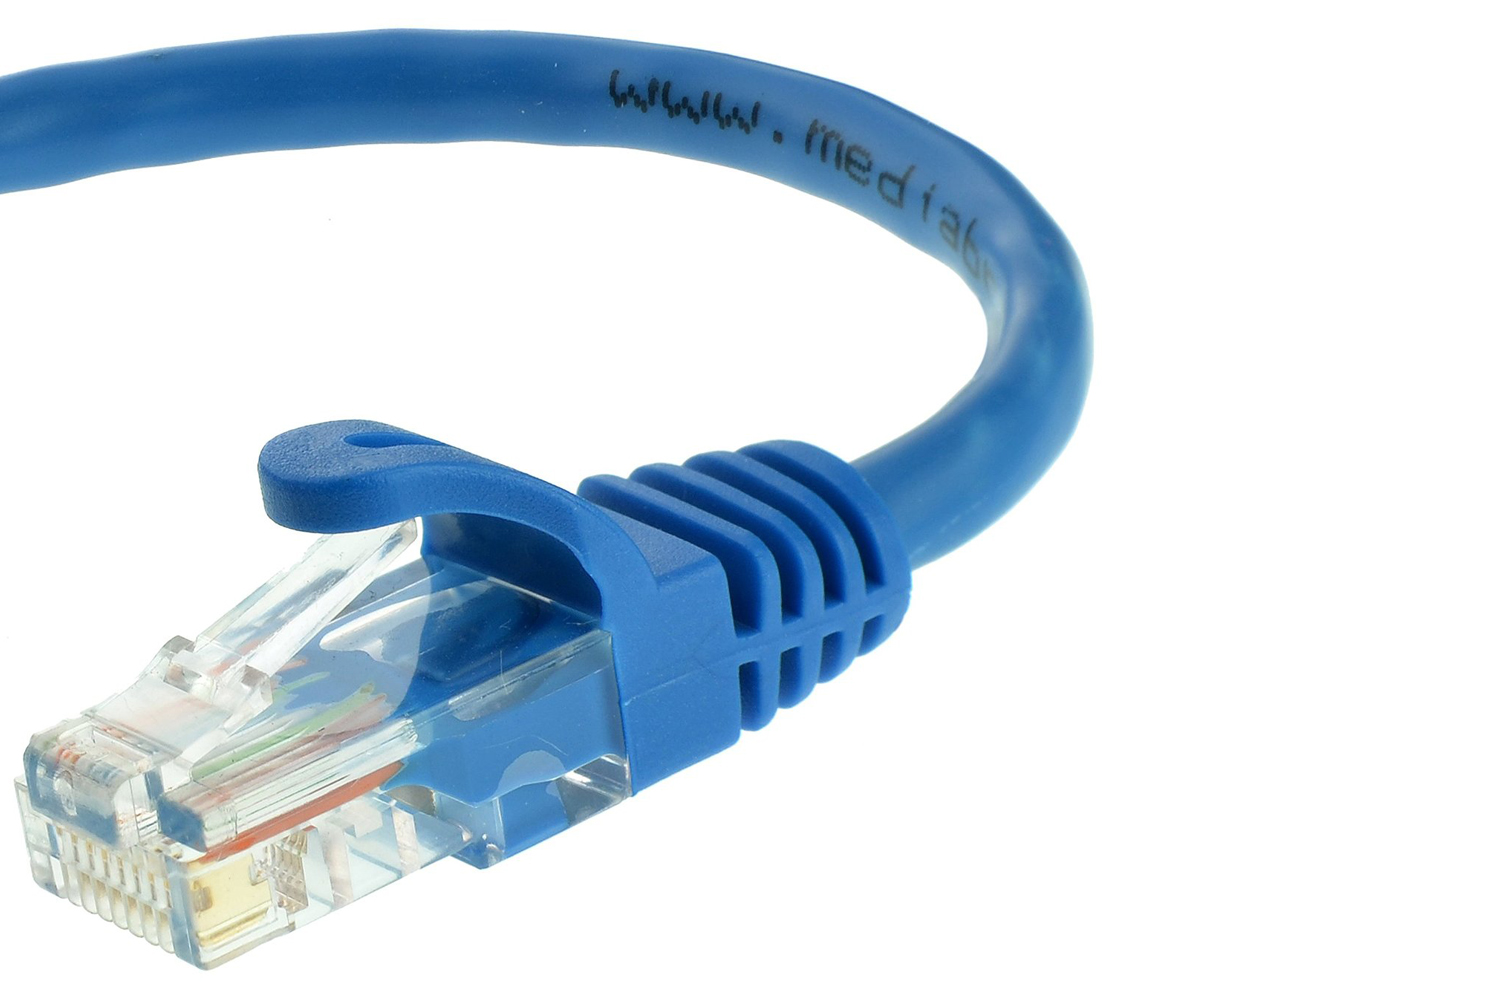 Cable Ethernet Cat 5 Ethernet Cable 15m